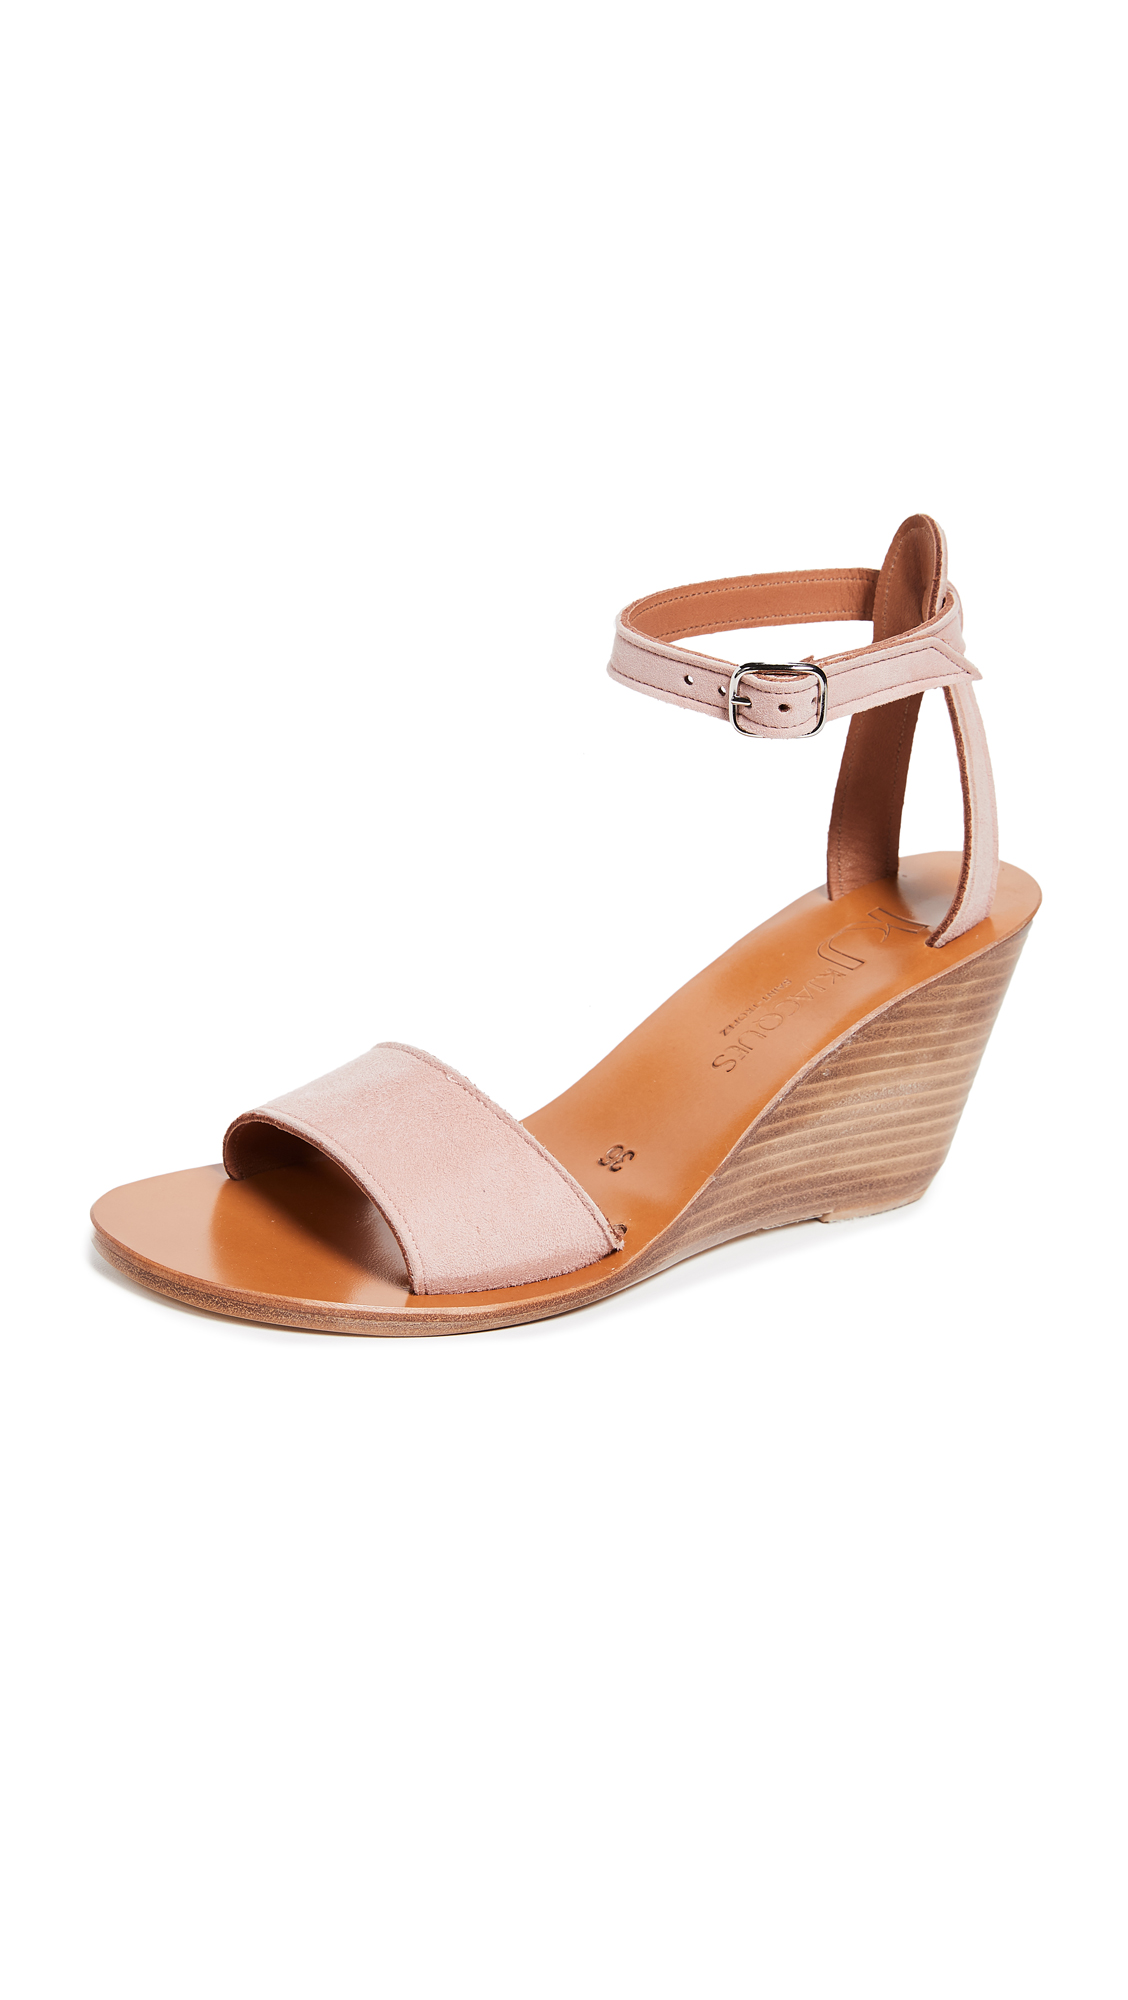 K. Jacques Sardaigne Wedge Sandals - Velours Factor